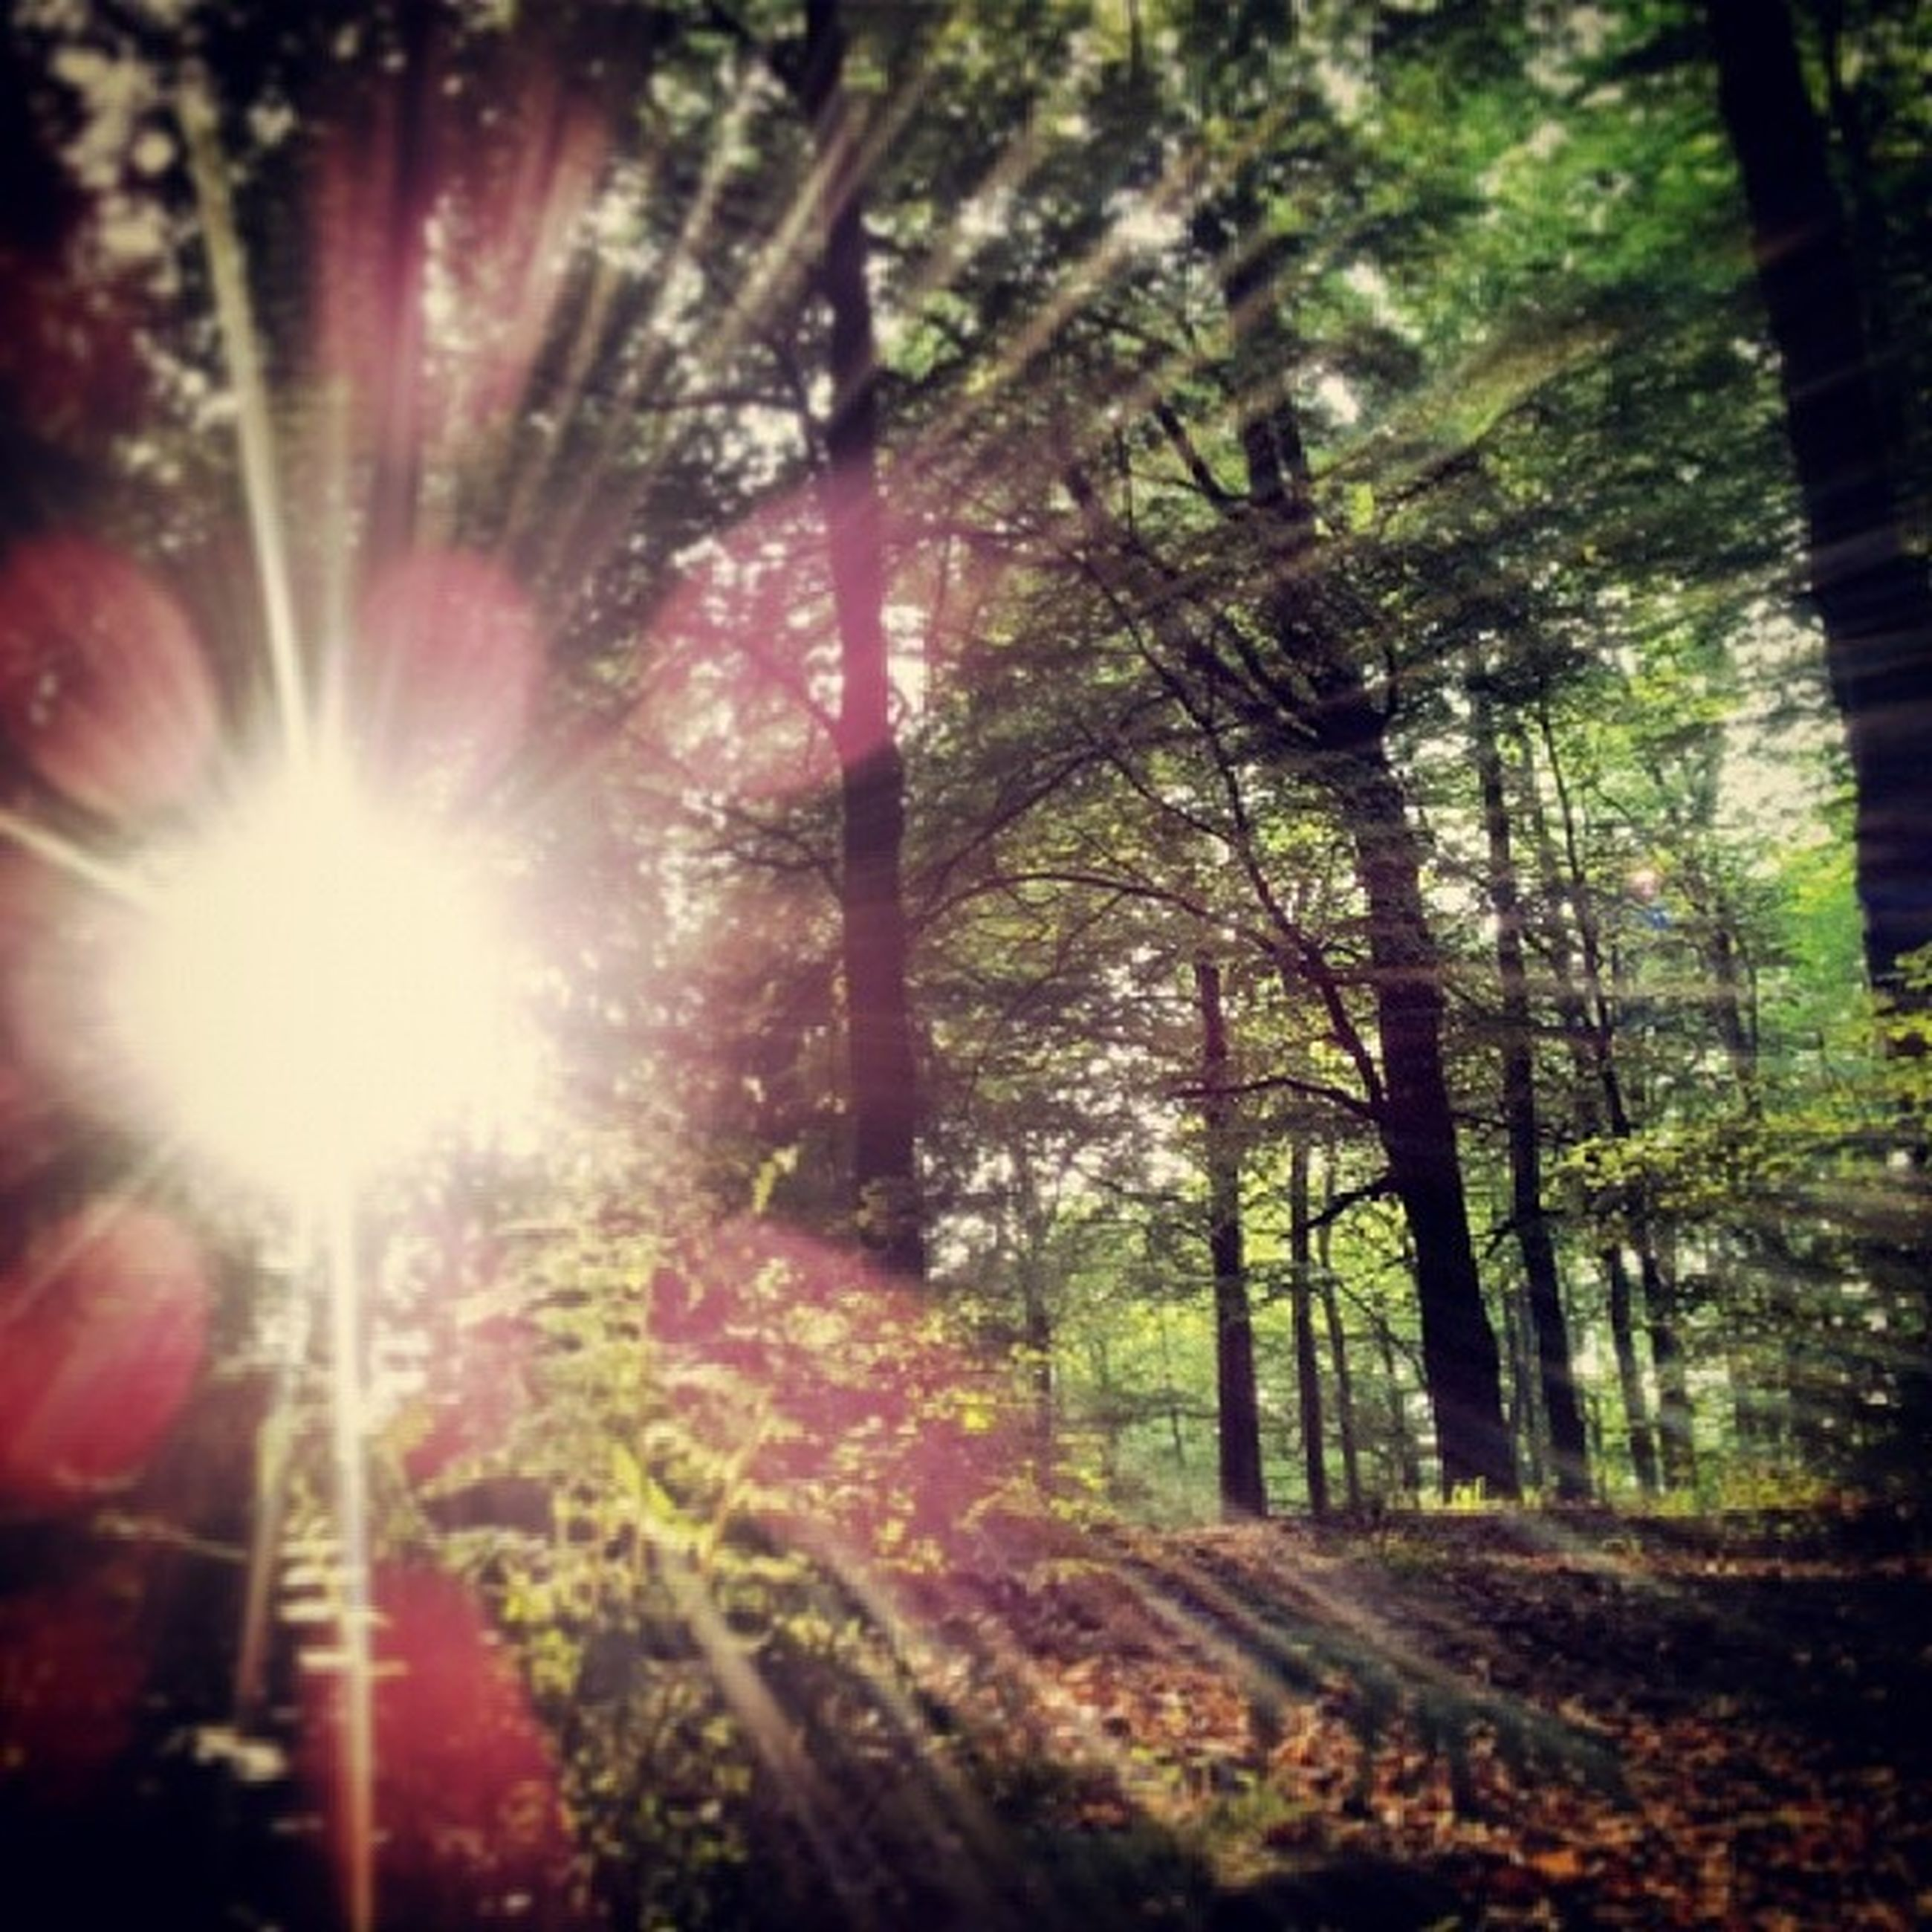 tree, sunbeam, sun, lens flare, sunlight, growth, nature, forest, tree trunk, tranquility, sunny, bright, beauty in nature, tranquil scene, outdoors, low angle view, day, back lit, scenics, streaming